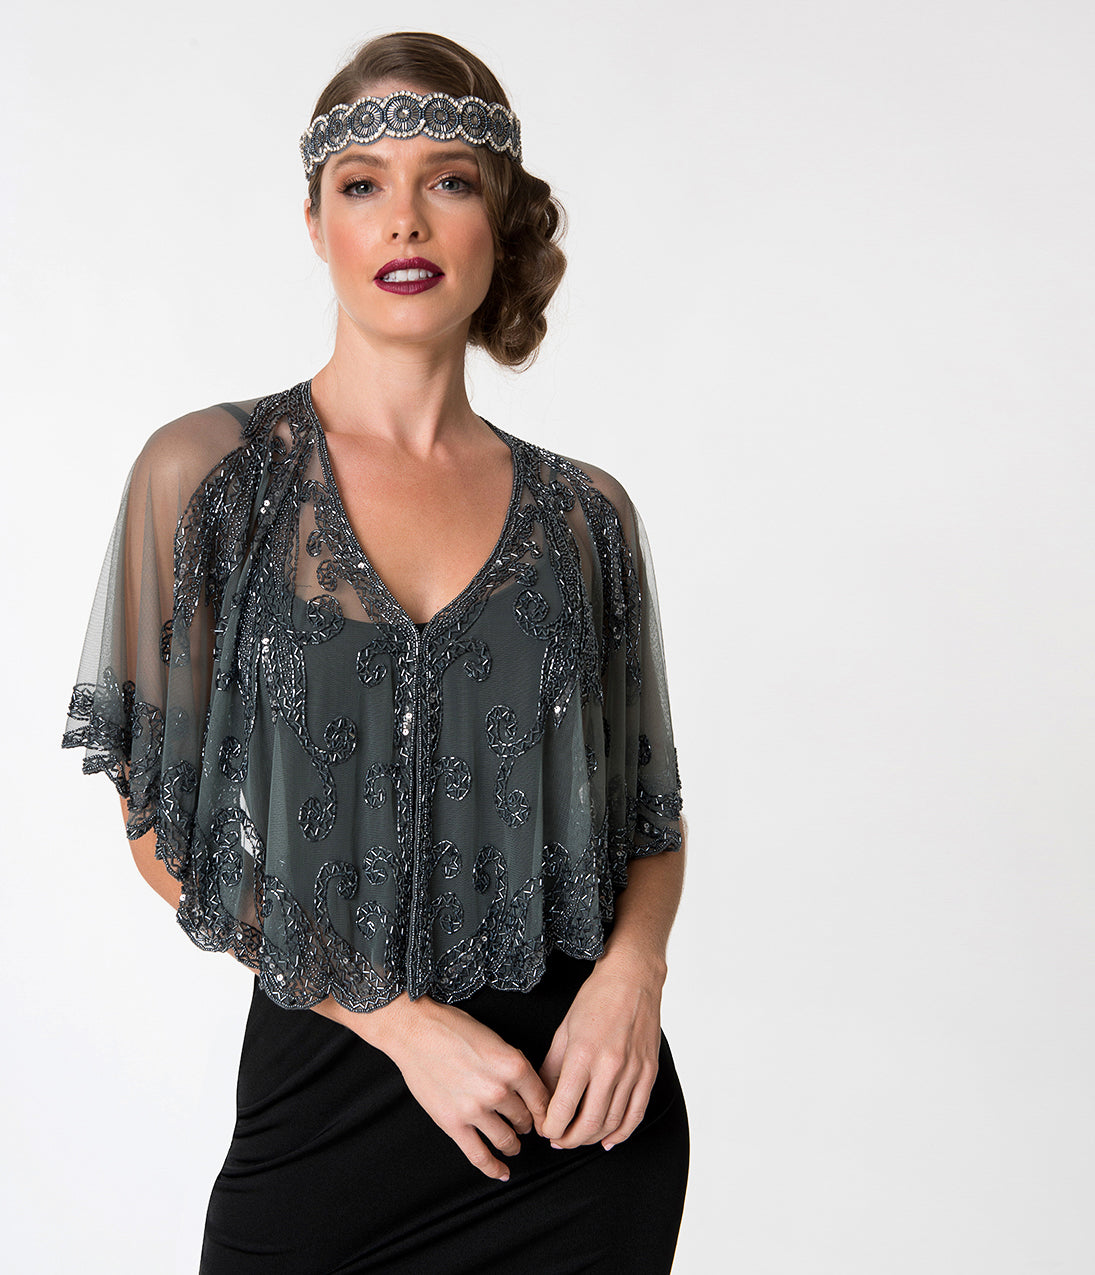 Vintage Coats & Jackets | Retro Coats and Jackets 1920S Style Grey  Gun Metal Beaded Sheer Mesh Capelet $68.00 AT vintagedancer.com